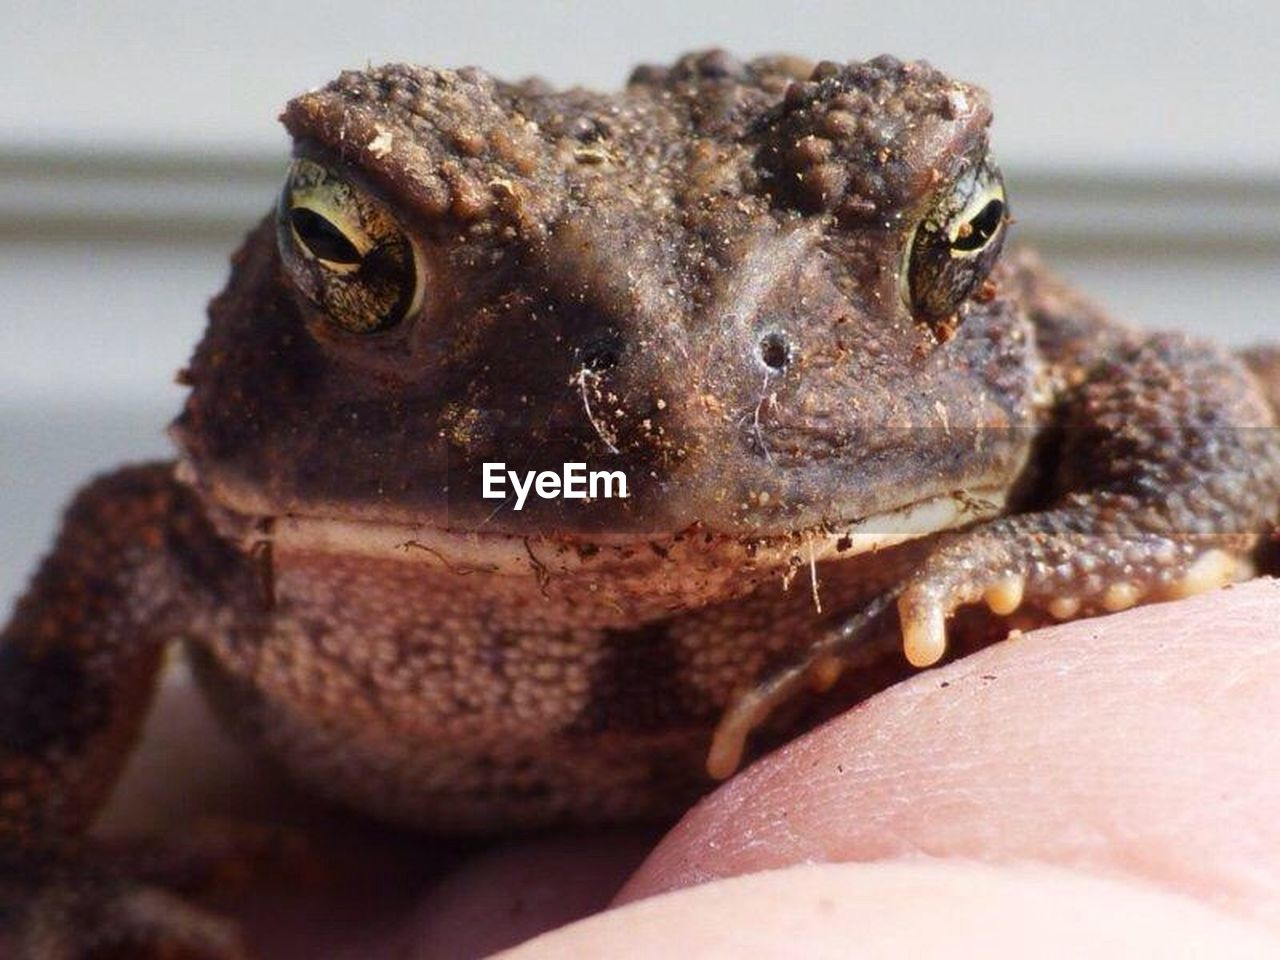 one animal, animal wildlife, close-up, animals in the wild, vertebrate, no people, reptile, animal body part, lizard, portrait, day, focus on foreground, amphibian, frog, outdoors, nature, animal eye, marine